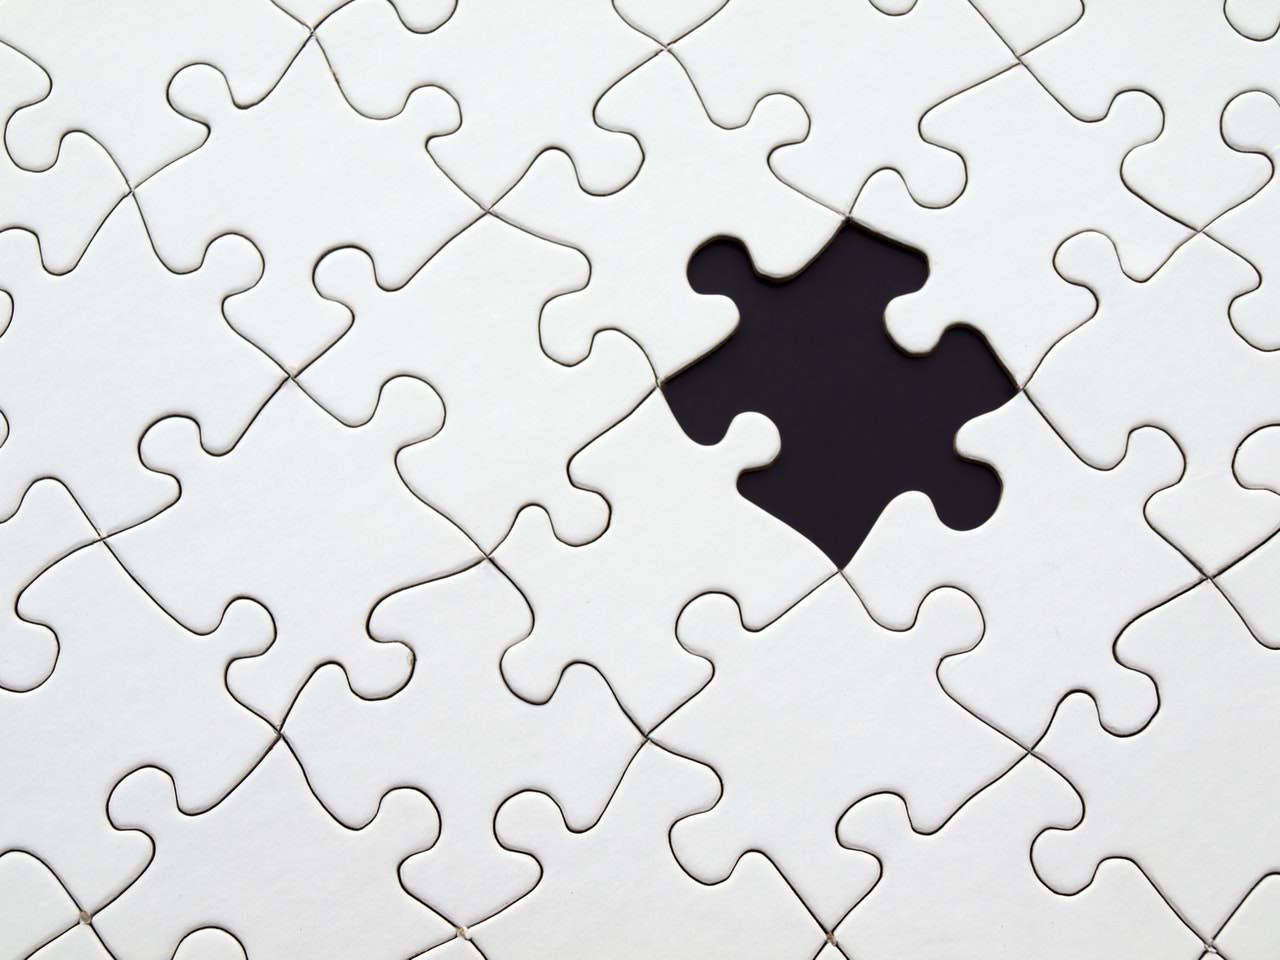 Puzzle with a piece missing